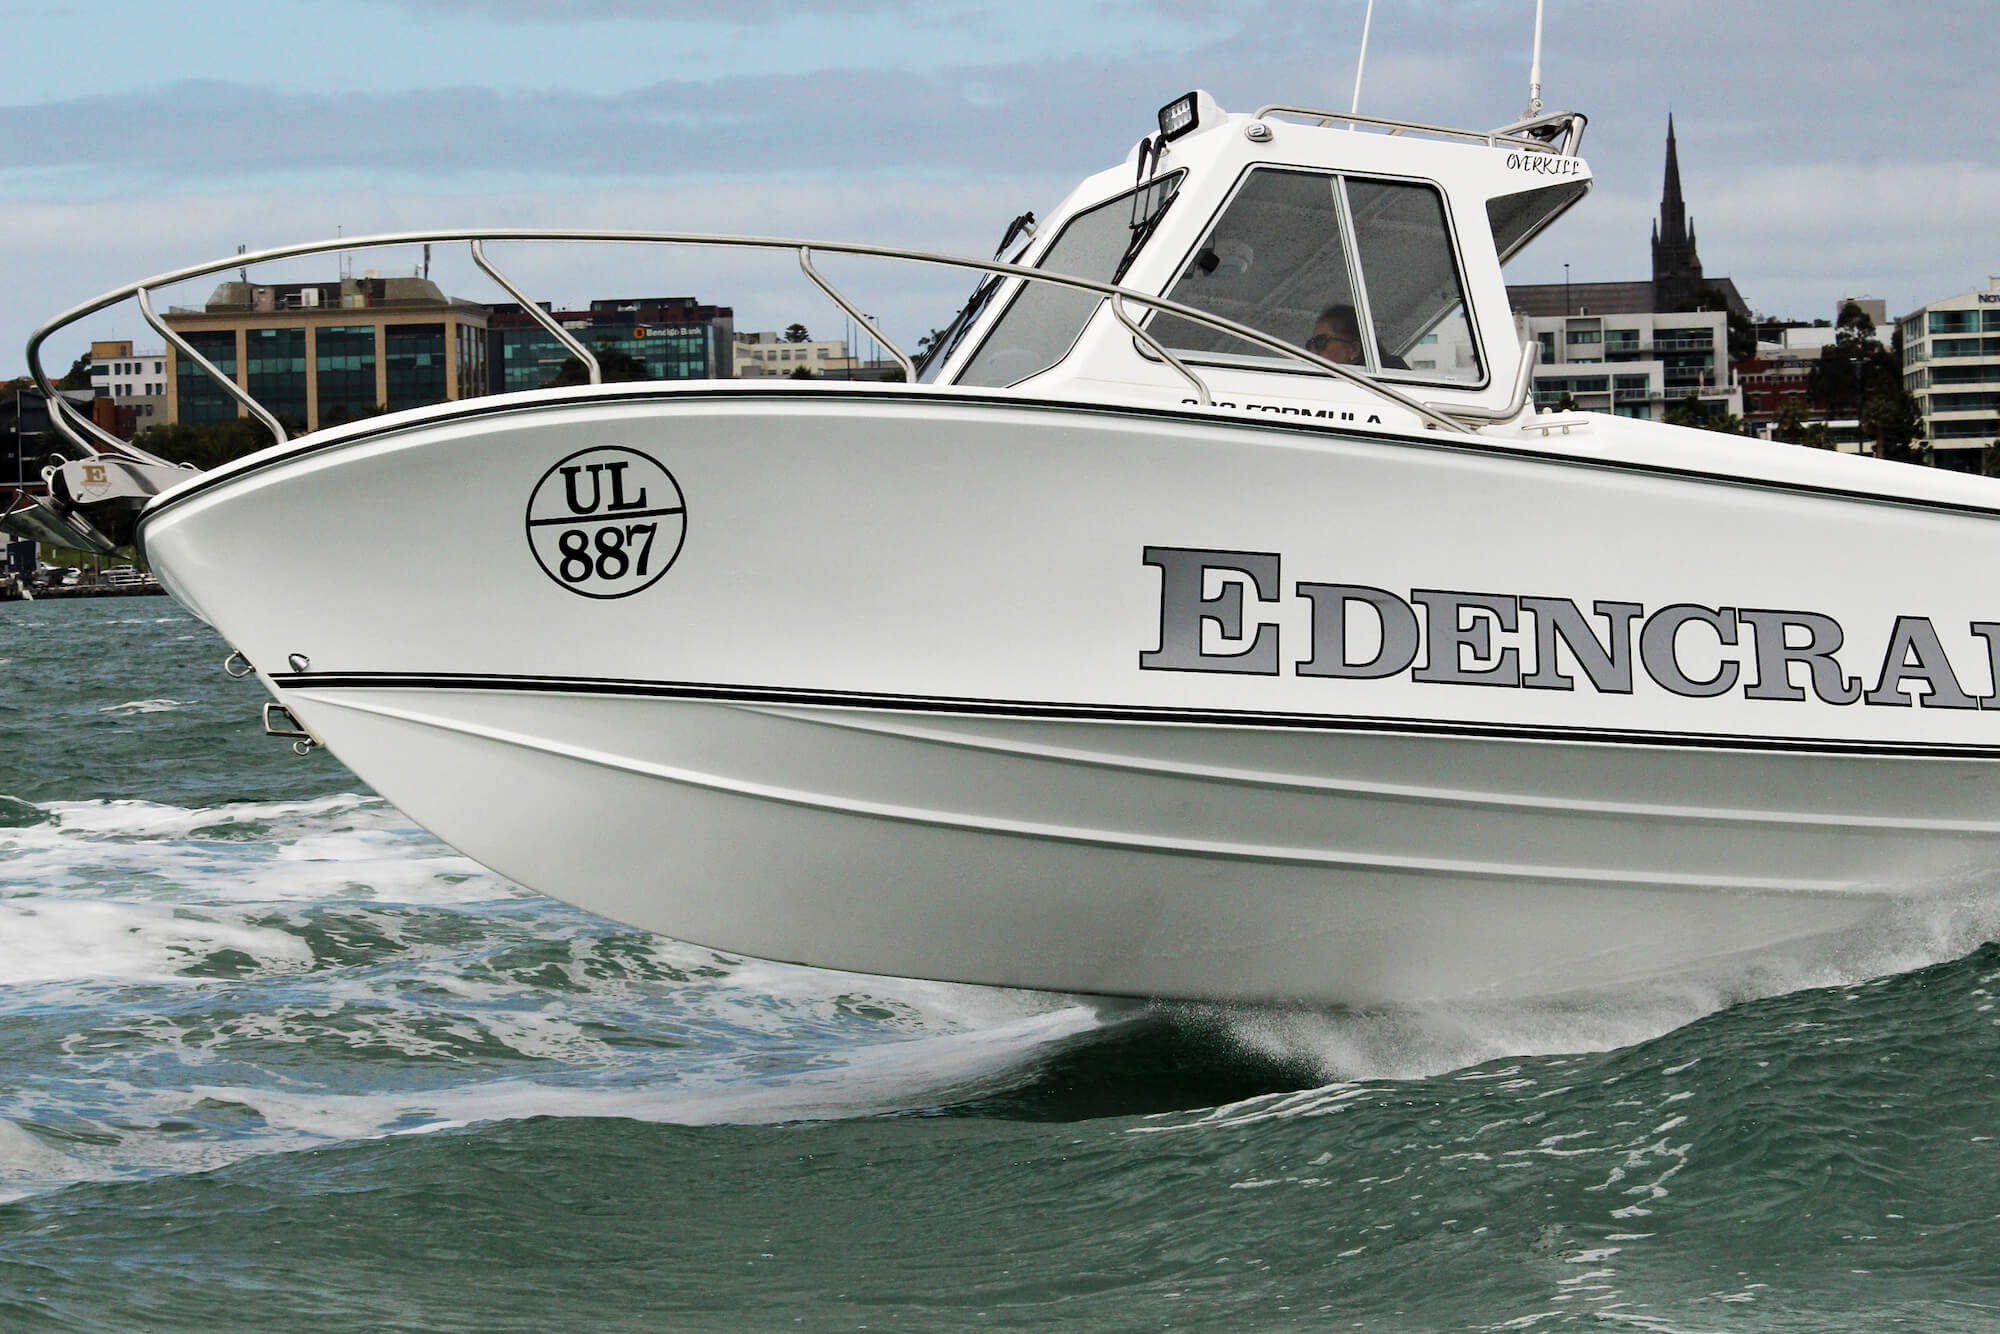 Edencraft 233 Formula Classic hardtop model launching from water